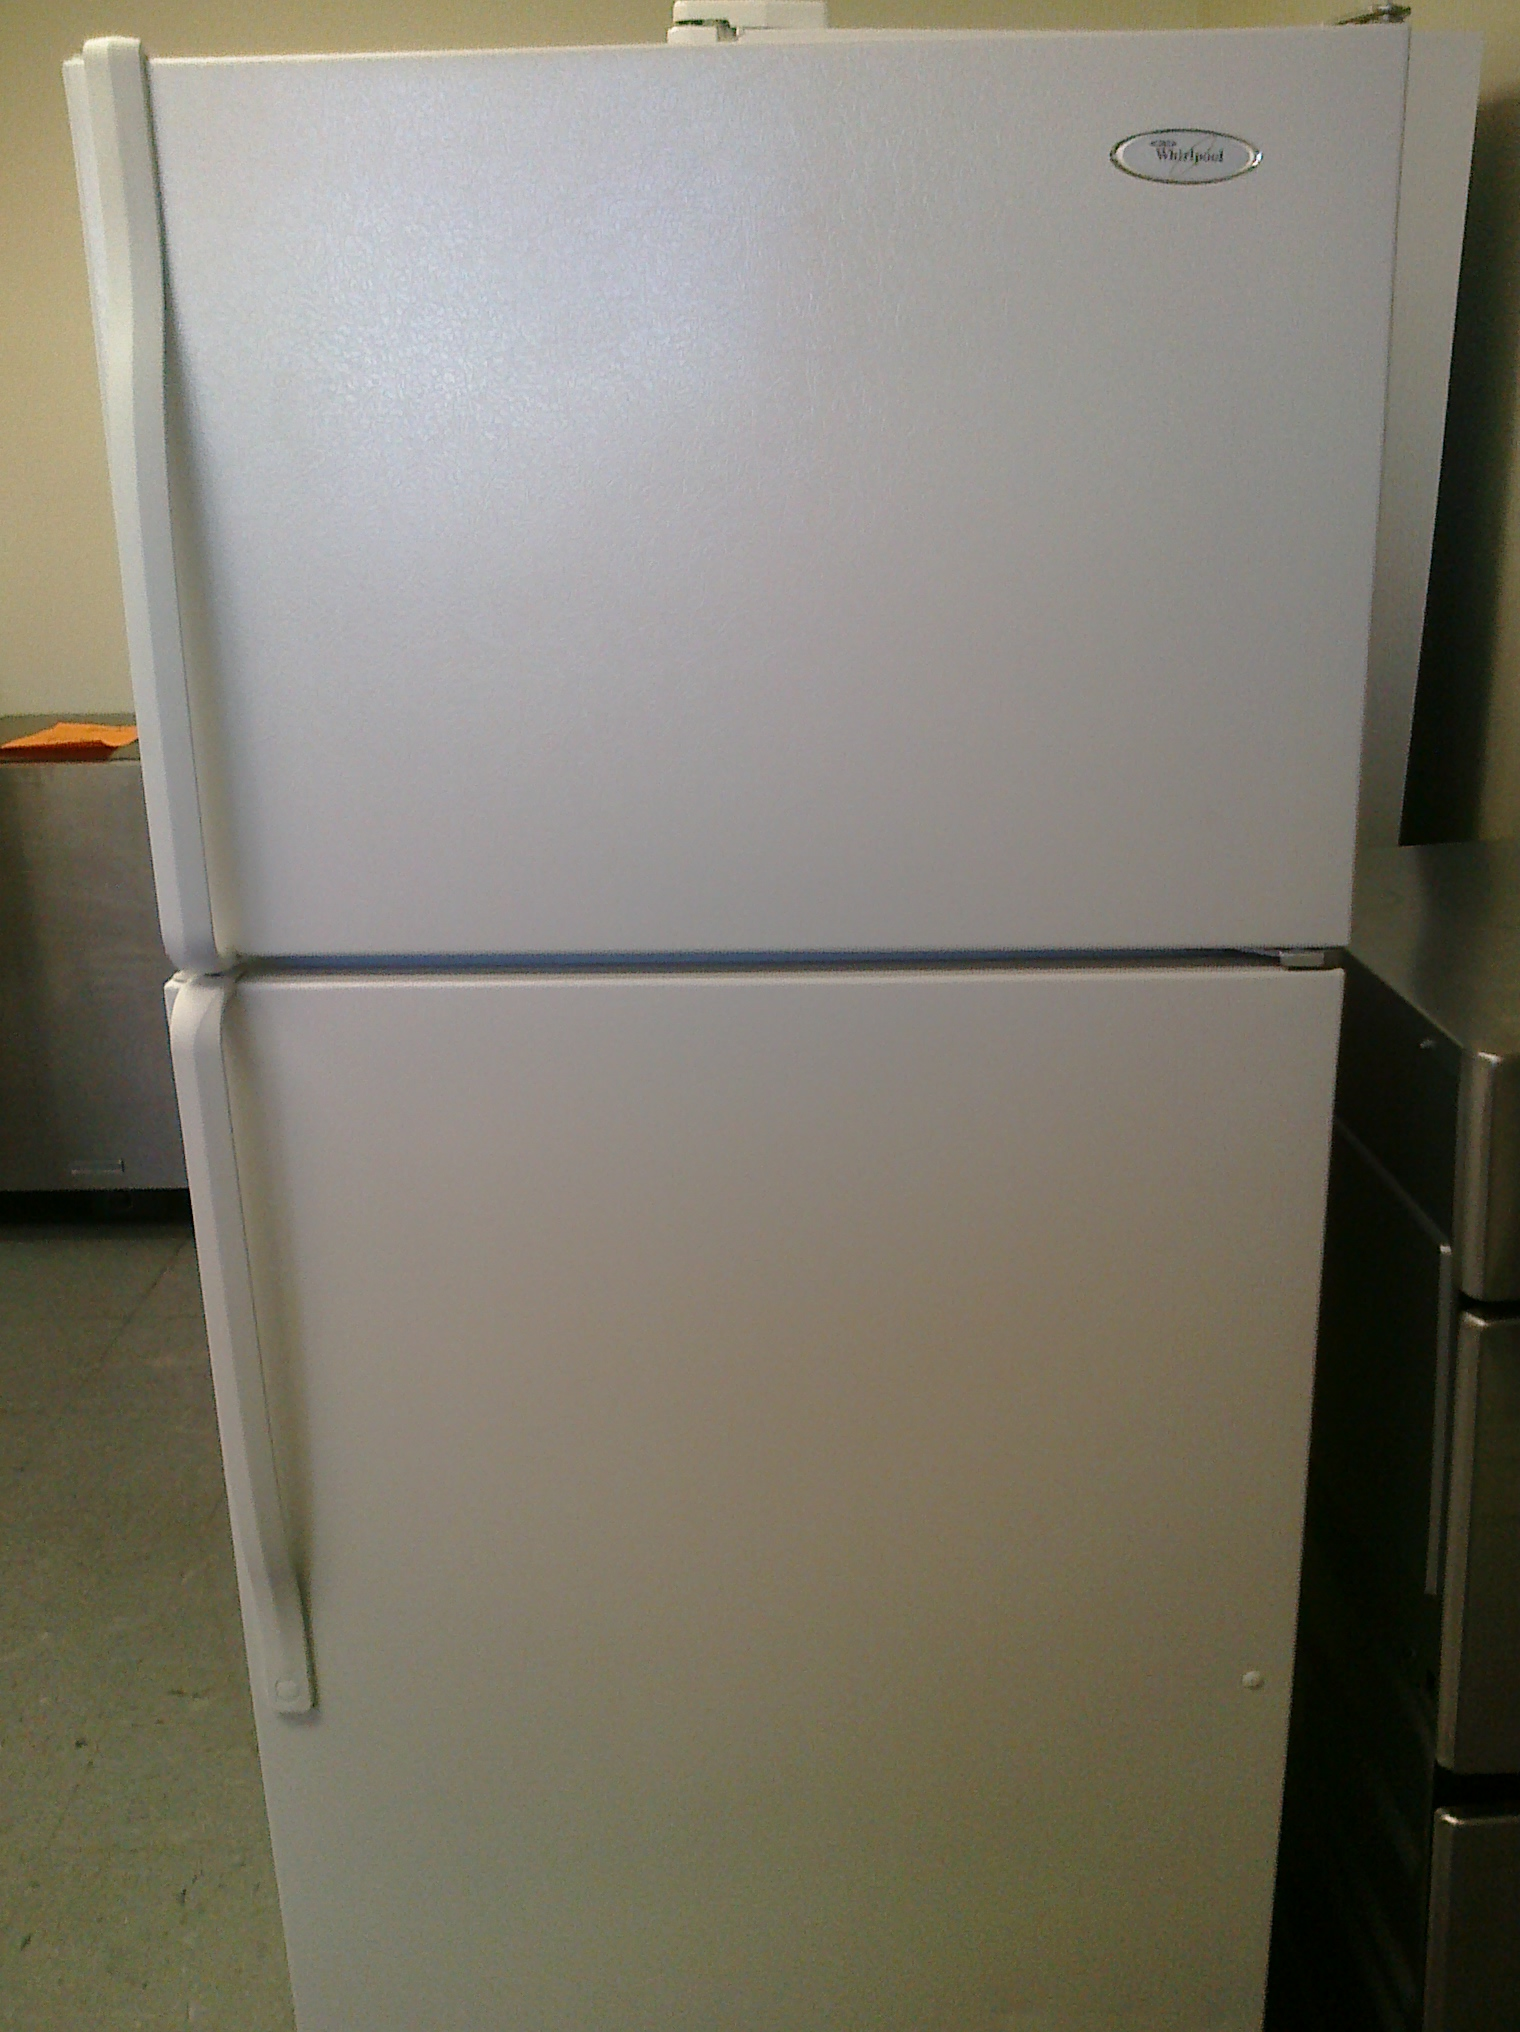 (9) Whirlpool W4TNWFWQ 14 Cubic Foot Top-Mount Refrigerator, White